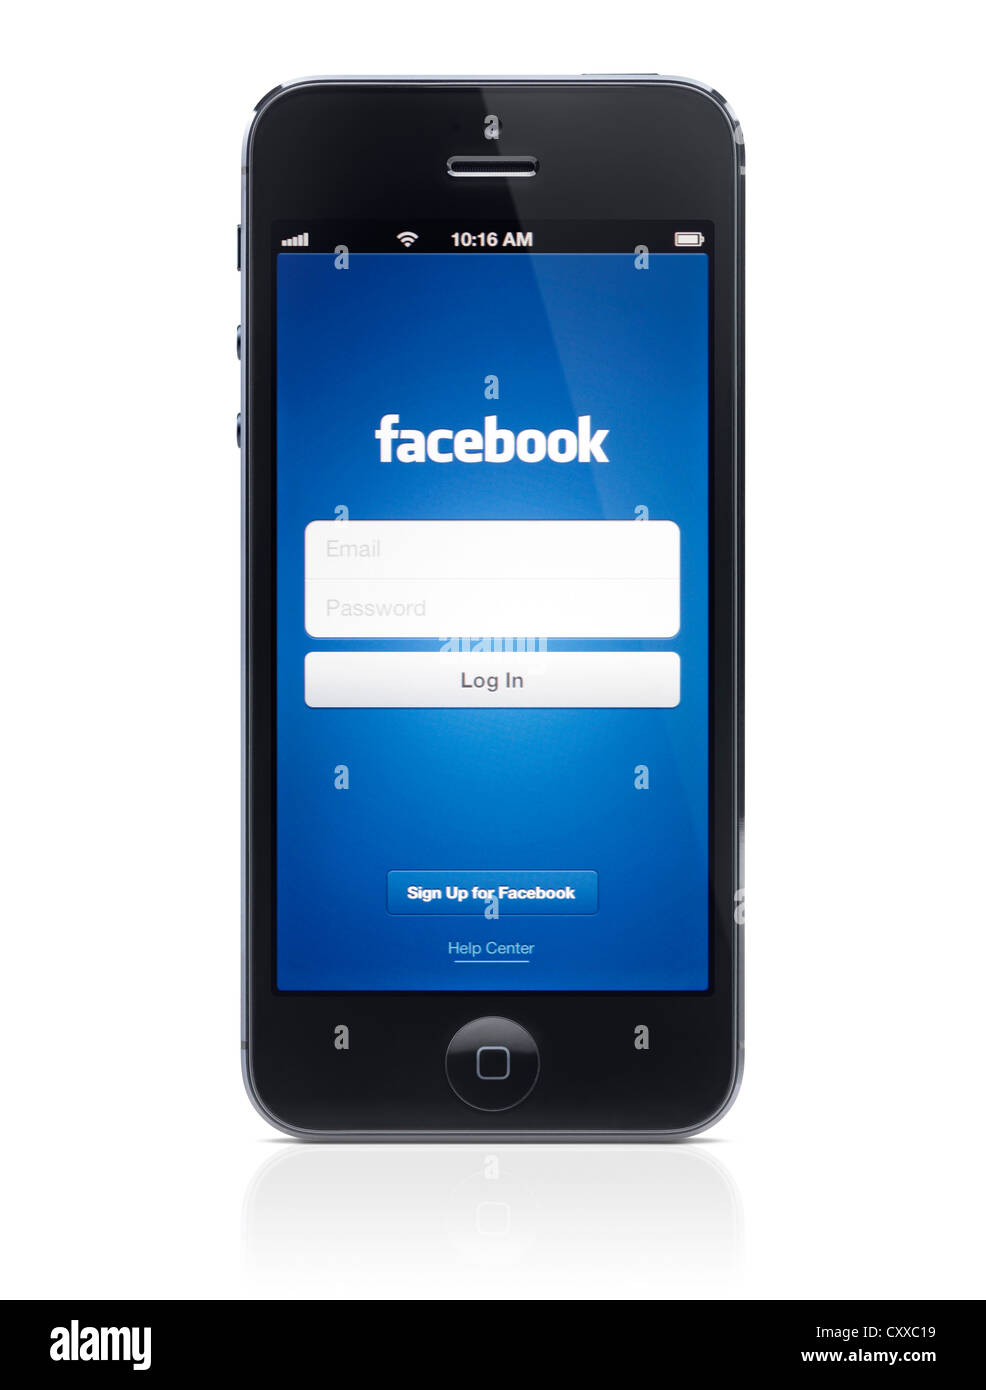 facebook mobile login iphone app welcome screen on display of apple iphone 5 14064